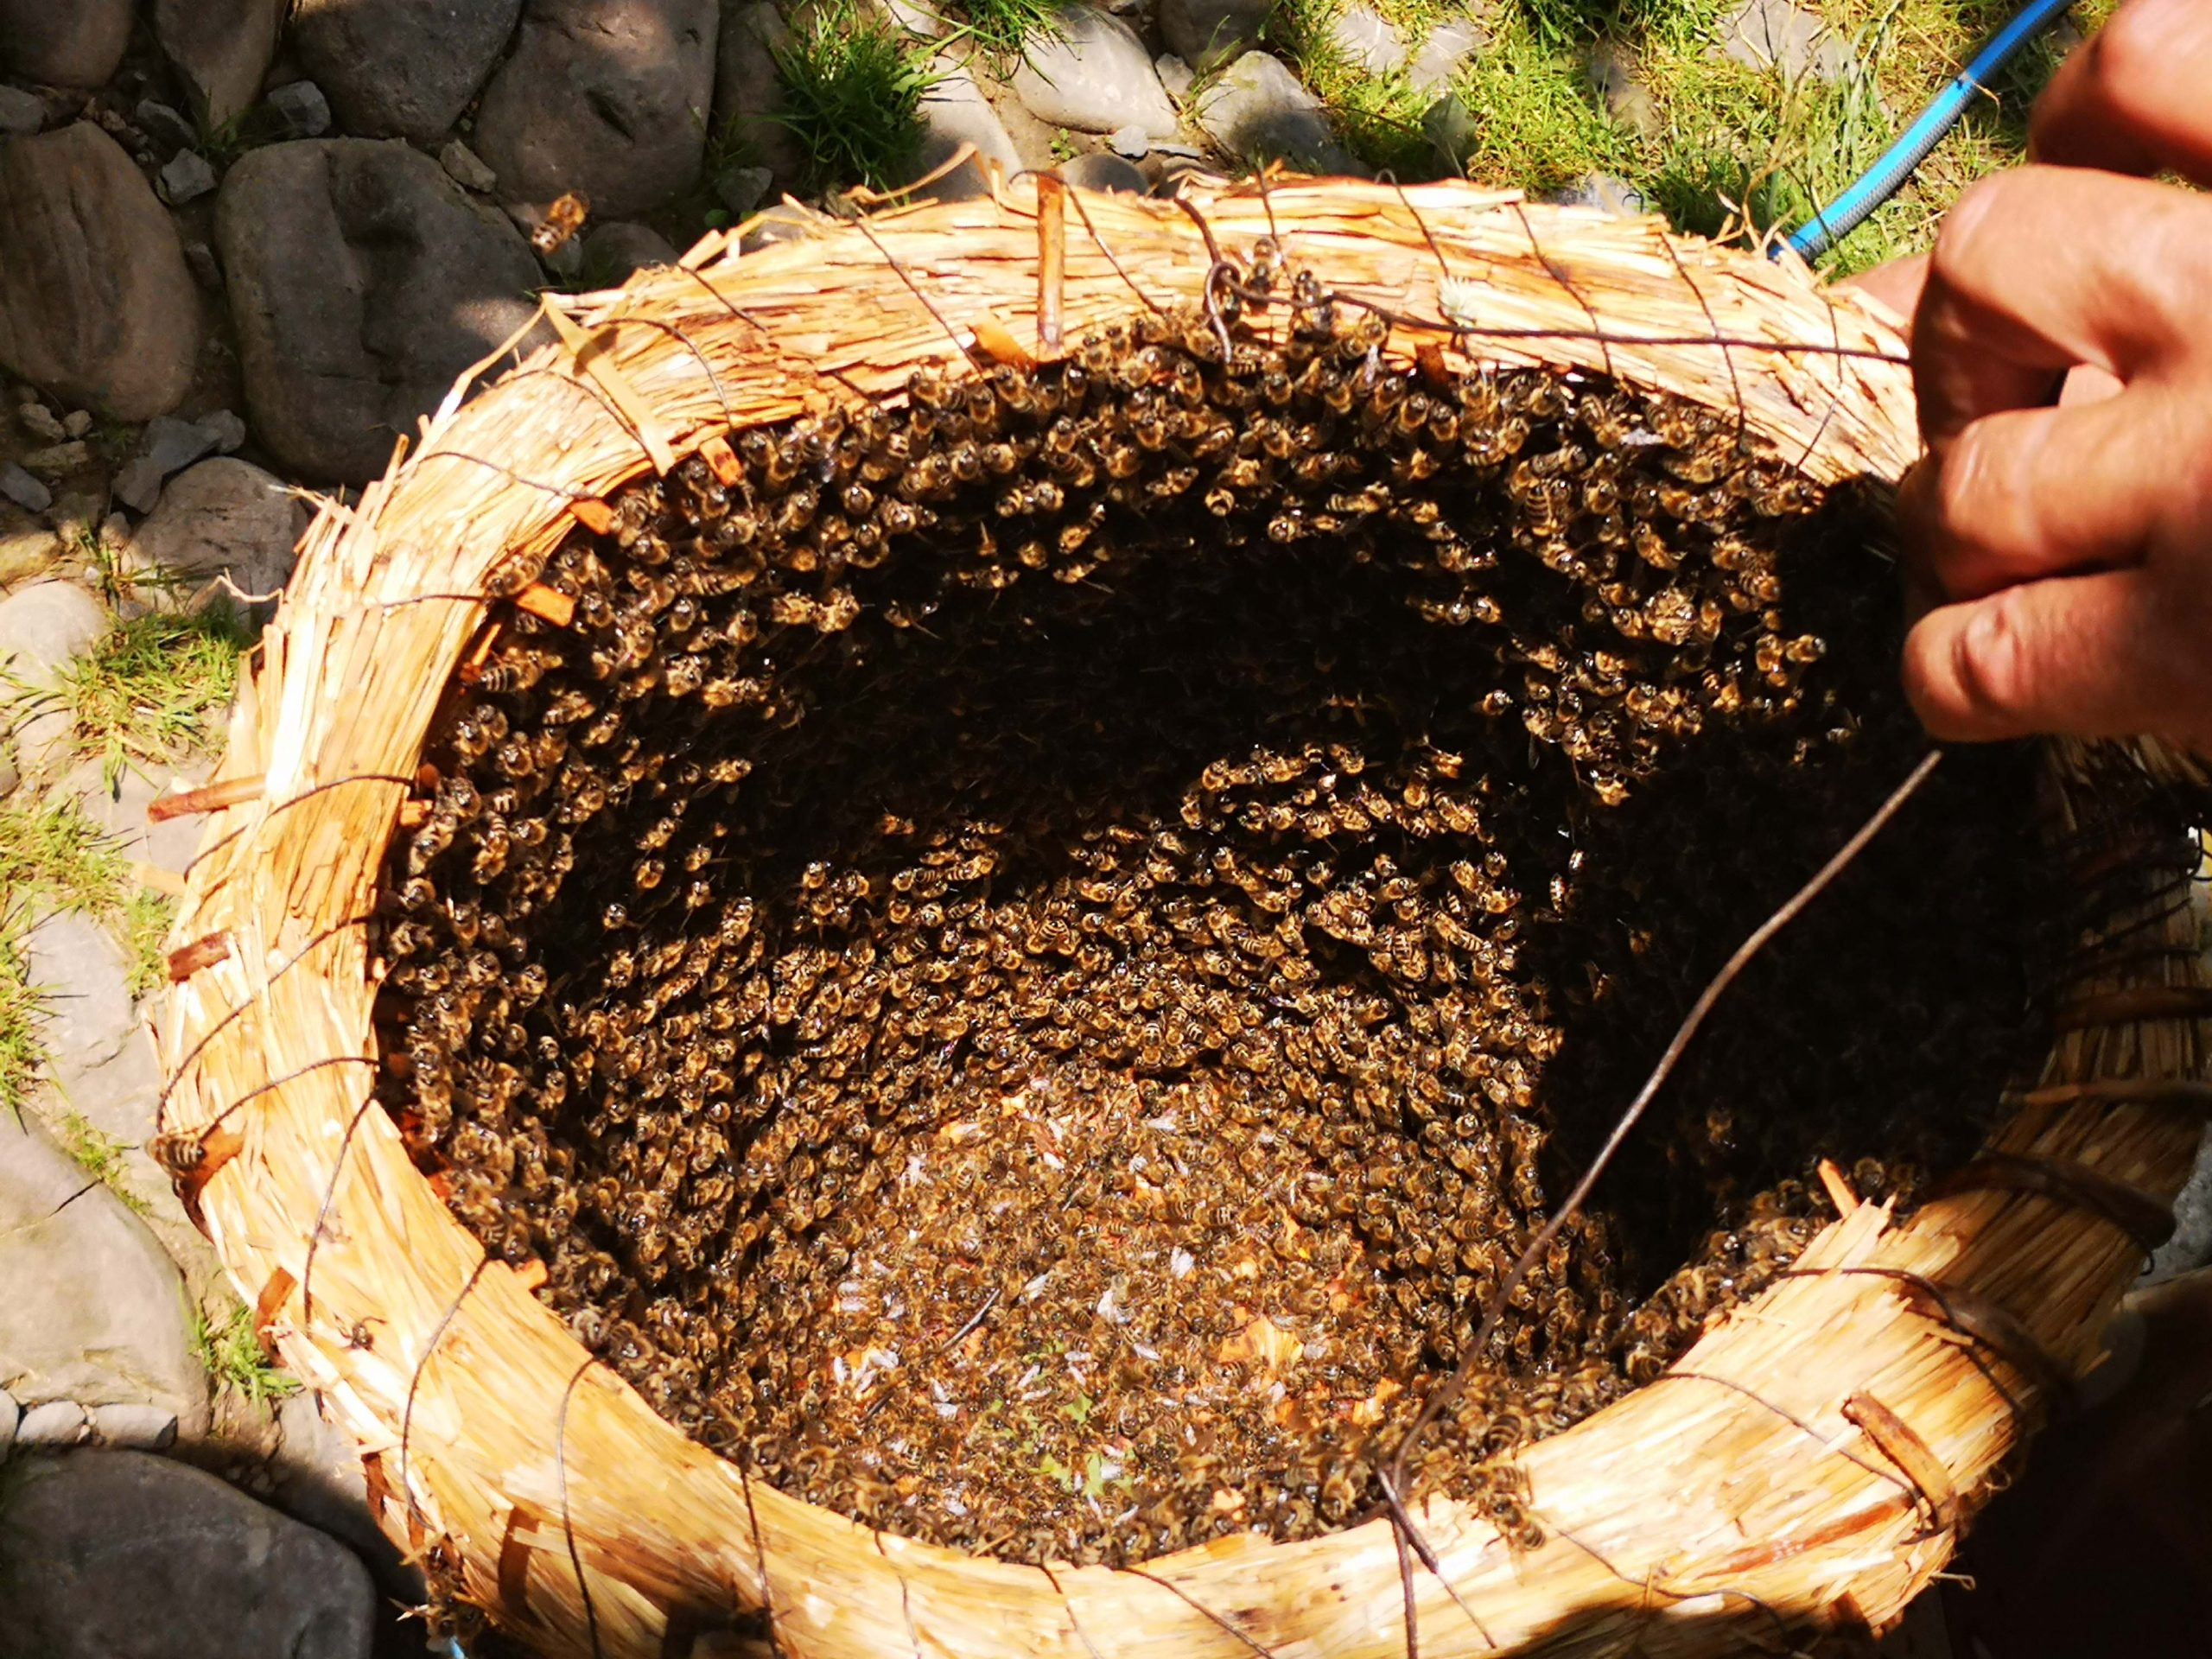 Meeting the British Royal's Bee Keeper in Transylvania